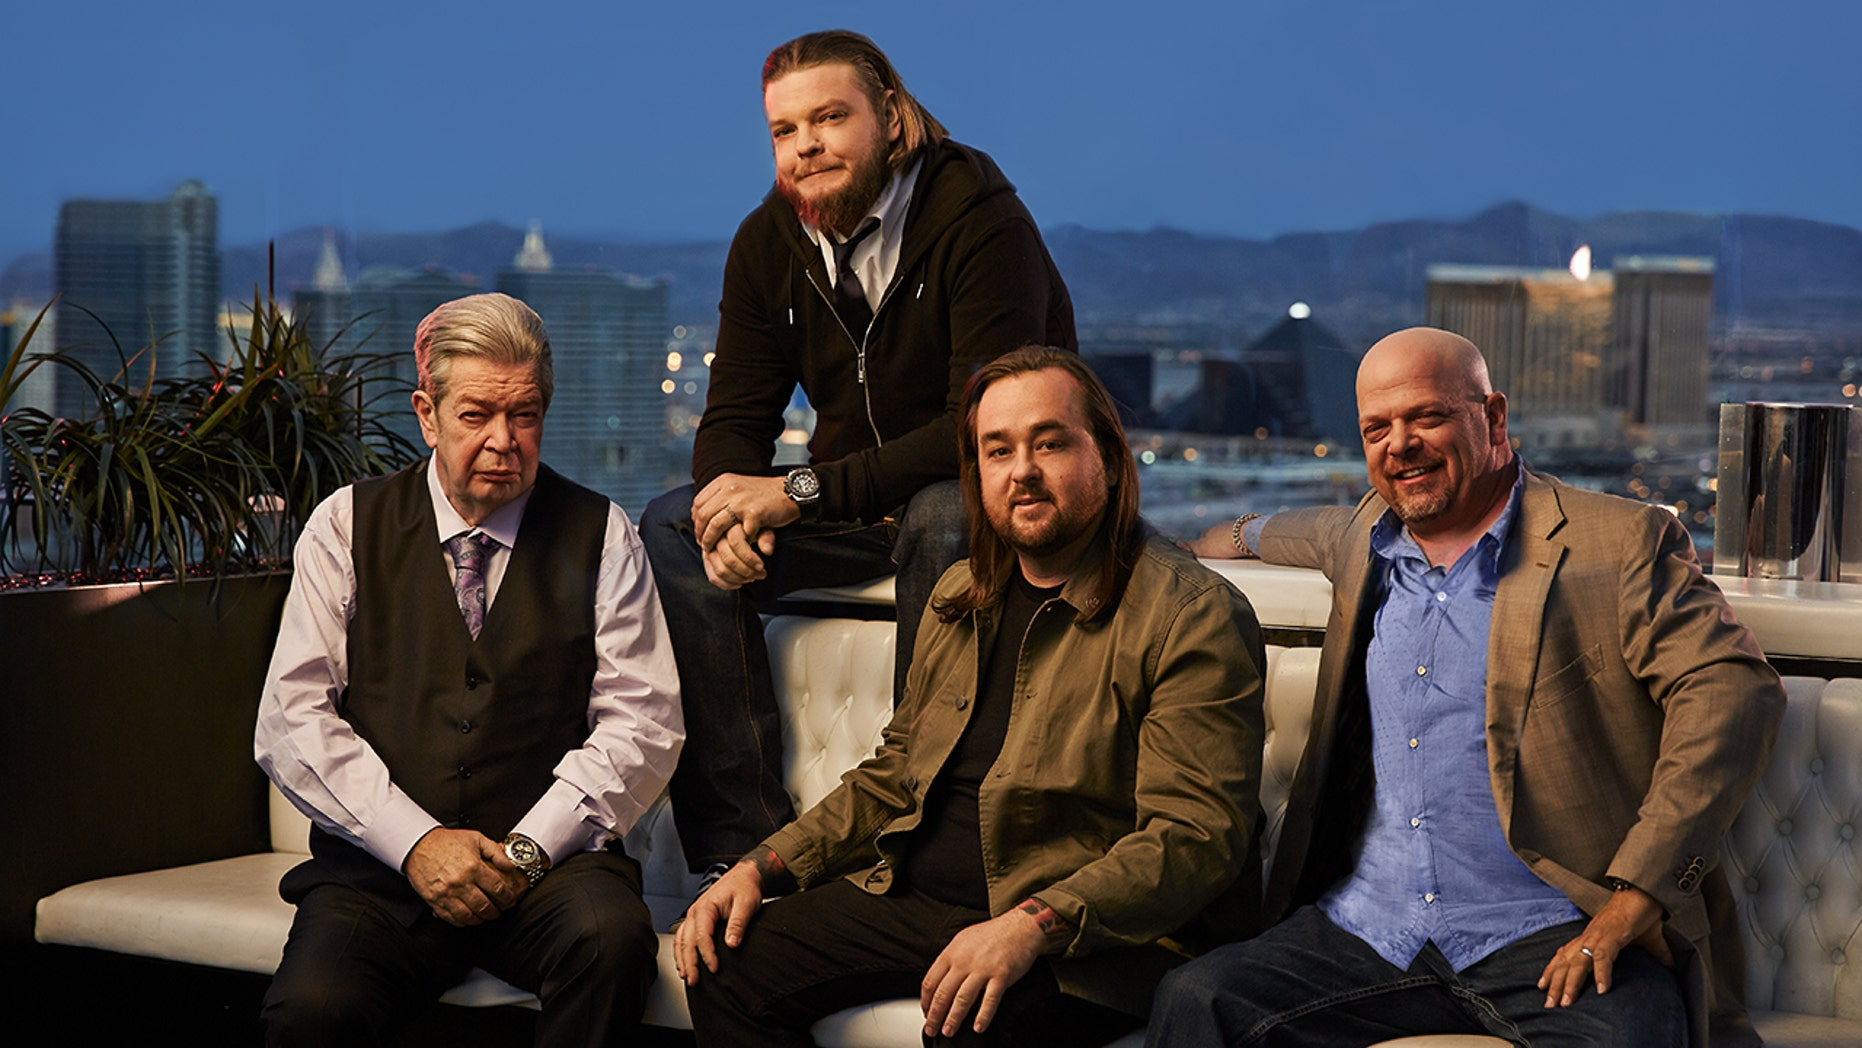 """From left to right: The Old Man, Corey, Chumlee and Rick of """"Pawn Stars""""."""